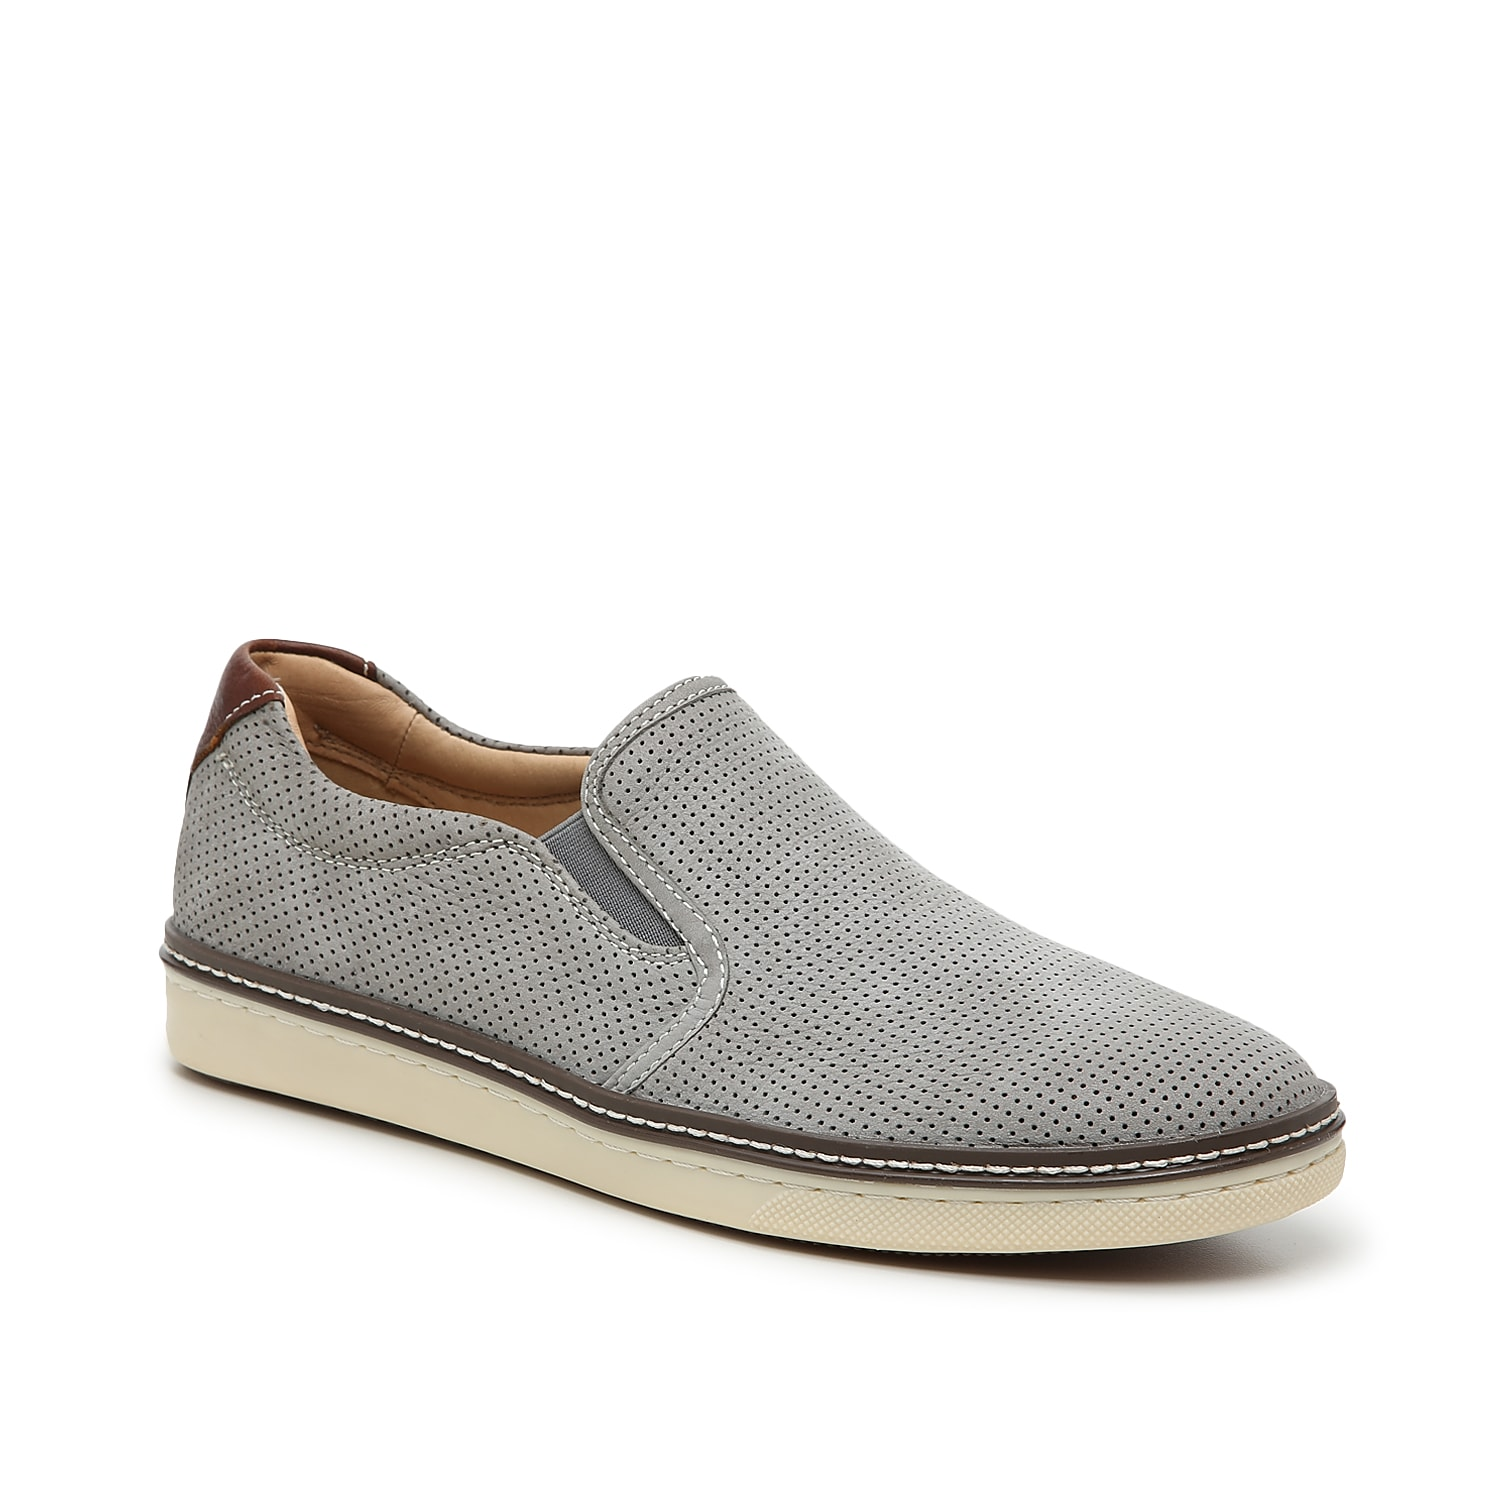 Kick your style up a notch with the Cullings slip-on from Johnston & Murphy. The perforated leather upper and dual side gores complement cuffed jeans and a basic tee!